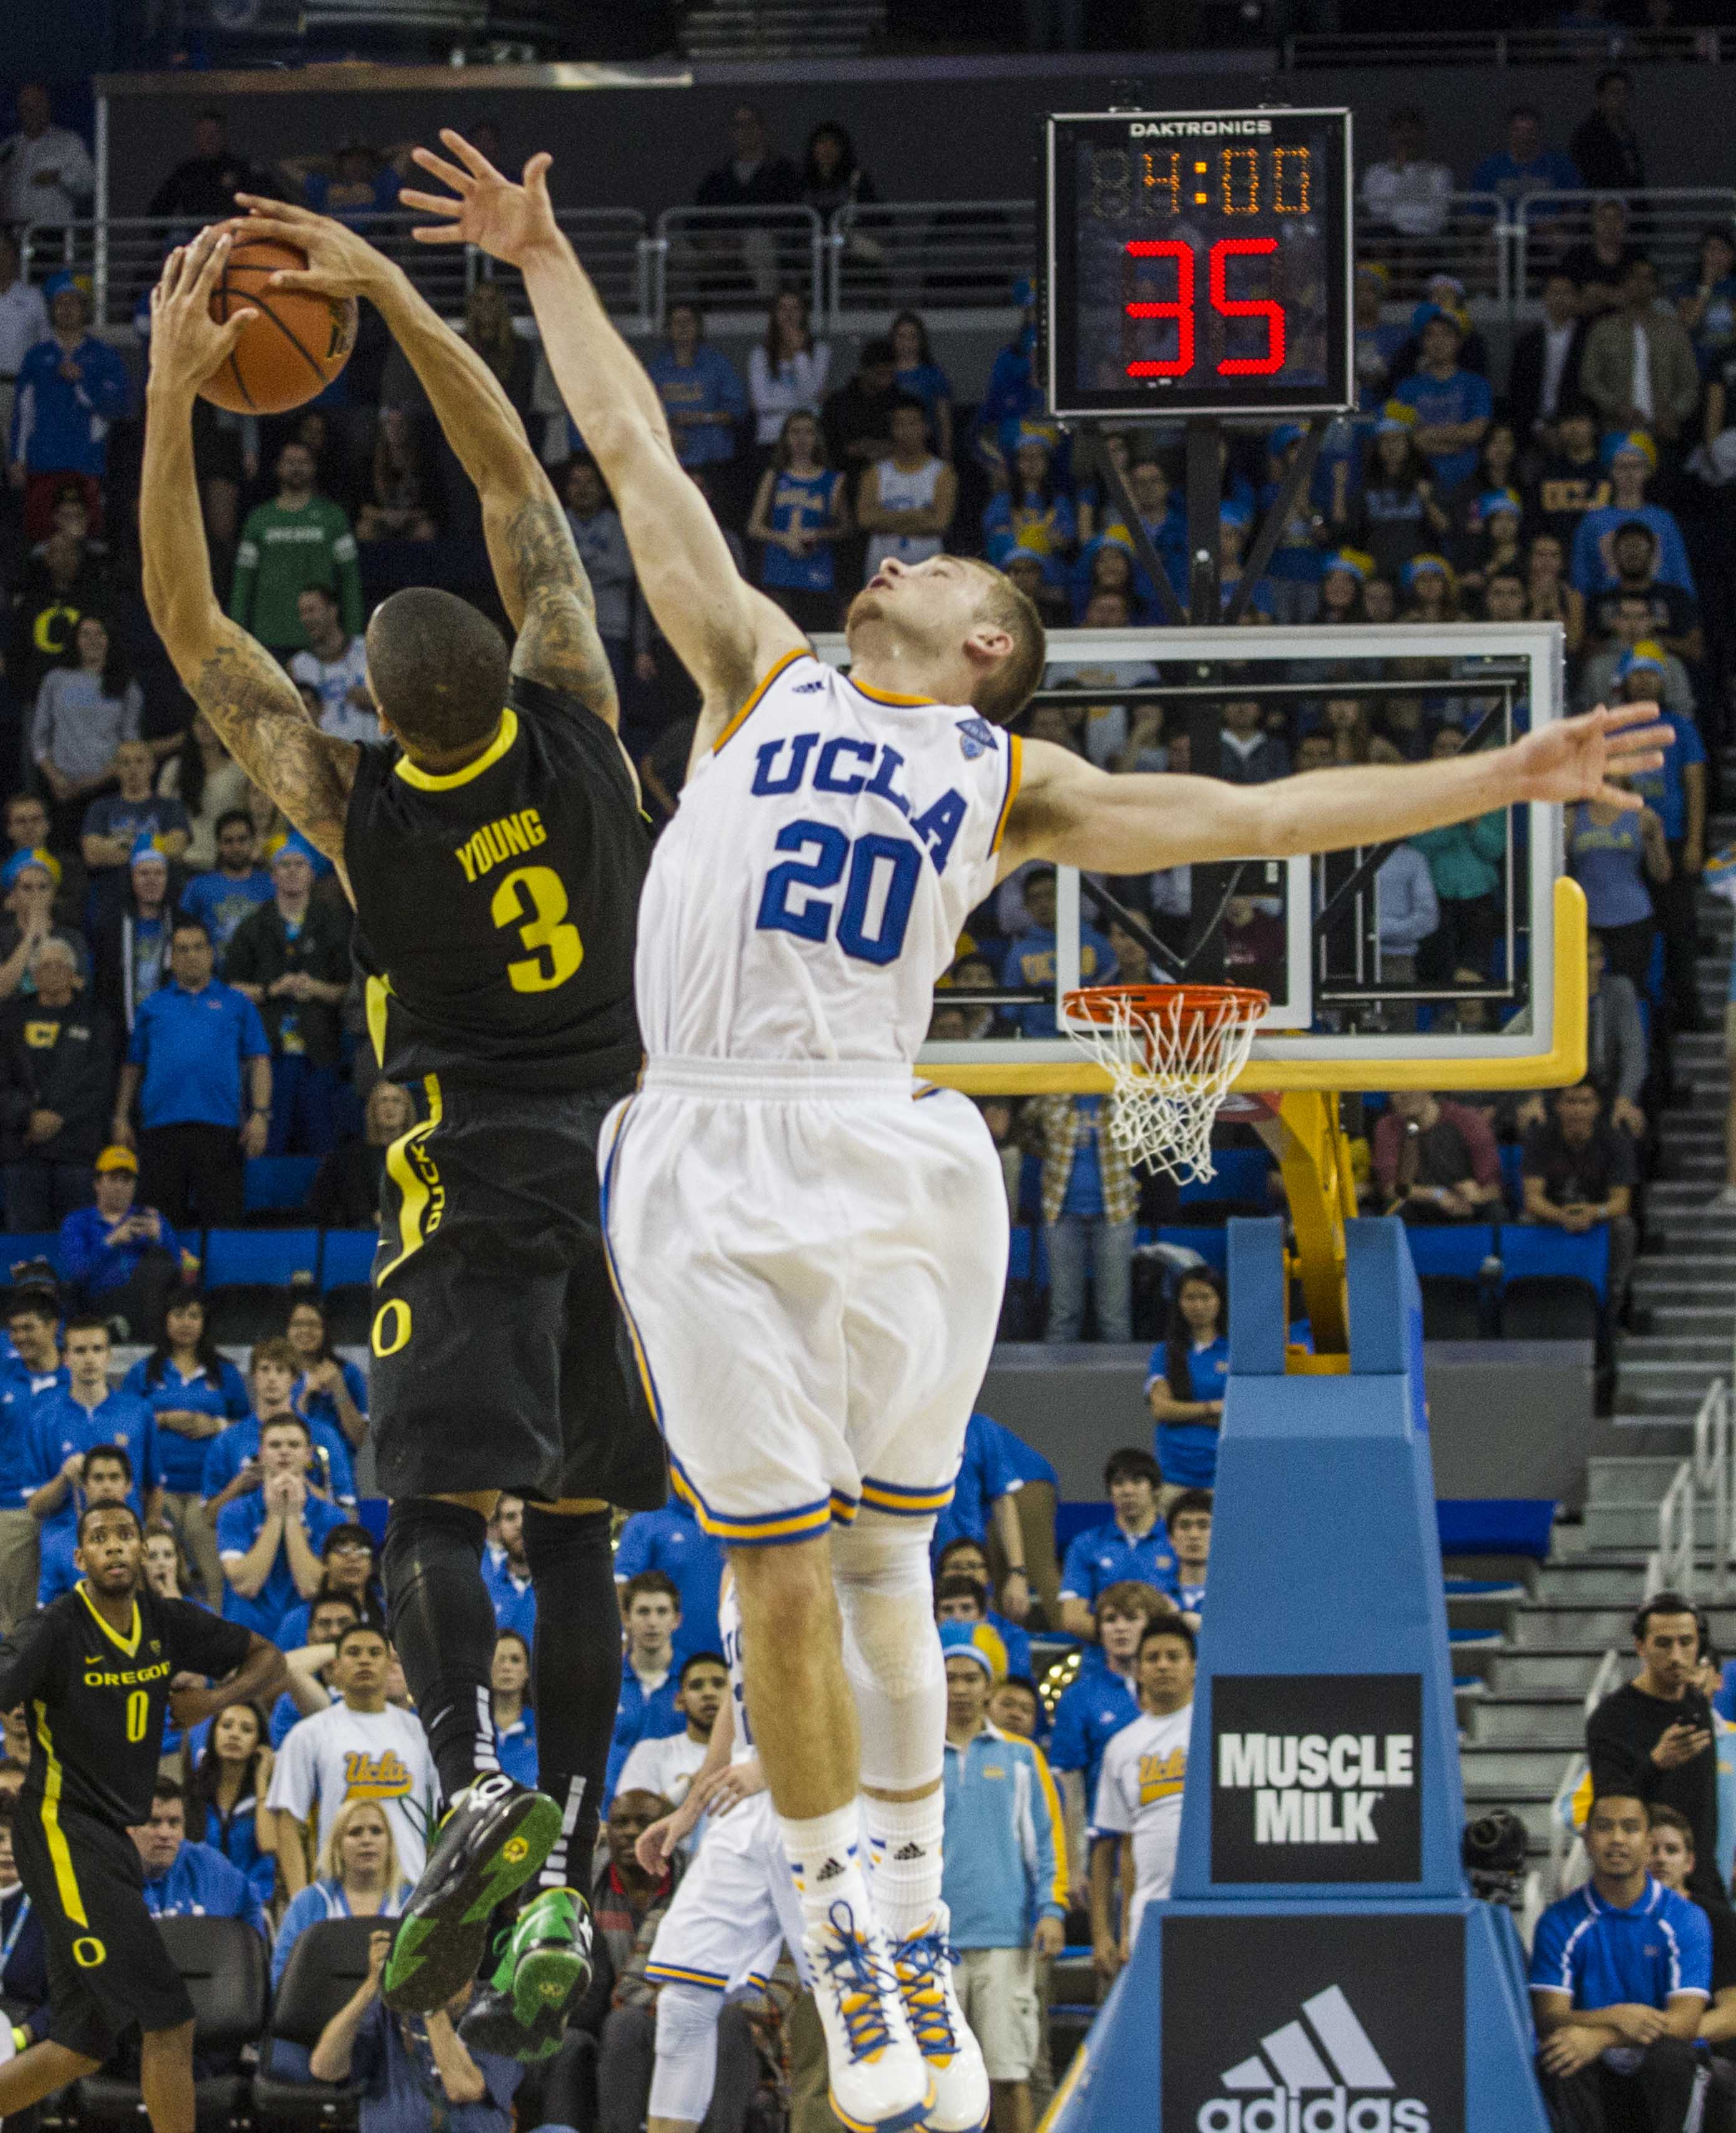 Oregon guard Joseph Young, left, and UCLA guard Bryce Alford, right, battle for a ball in the second half of an NCAA college basketball game Thursday, Feb. 27, 2014, in Los Angeles. Oregon 87-83 double overtime win over UCLA. Young scored a team-high 26 points. Alford scored a game-hight 31 points